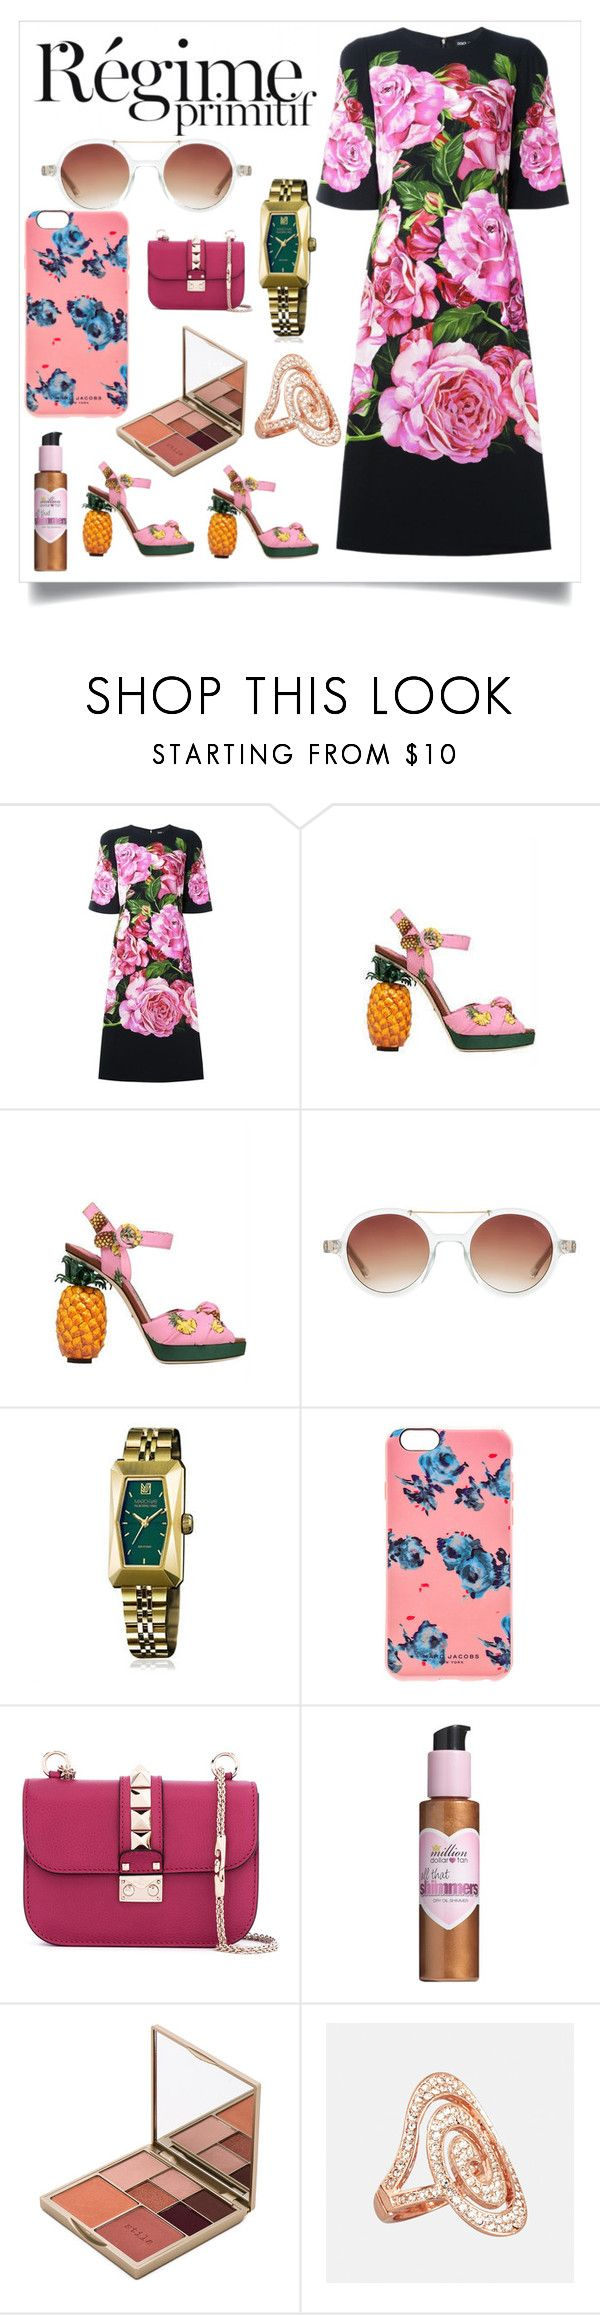 """""""big sale offer"""" by denisee-denisee ❤ liked on Polyvore featuring Dolce&Gabbana, Dsquared2, Komono, March LA.B, Marc Jacobs, Valentino, Million Dollar Tan, Stila, Avenue and Anja"""